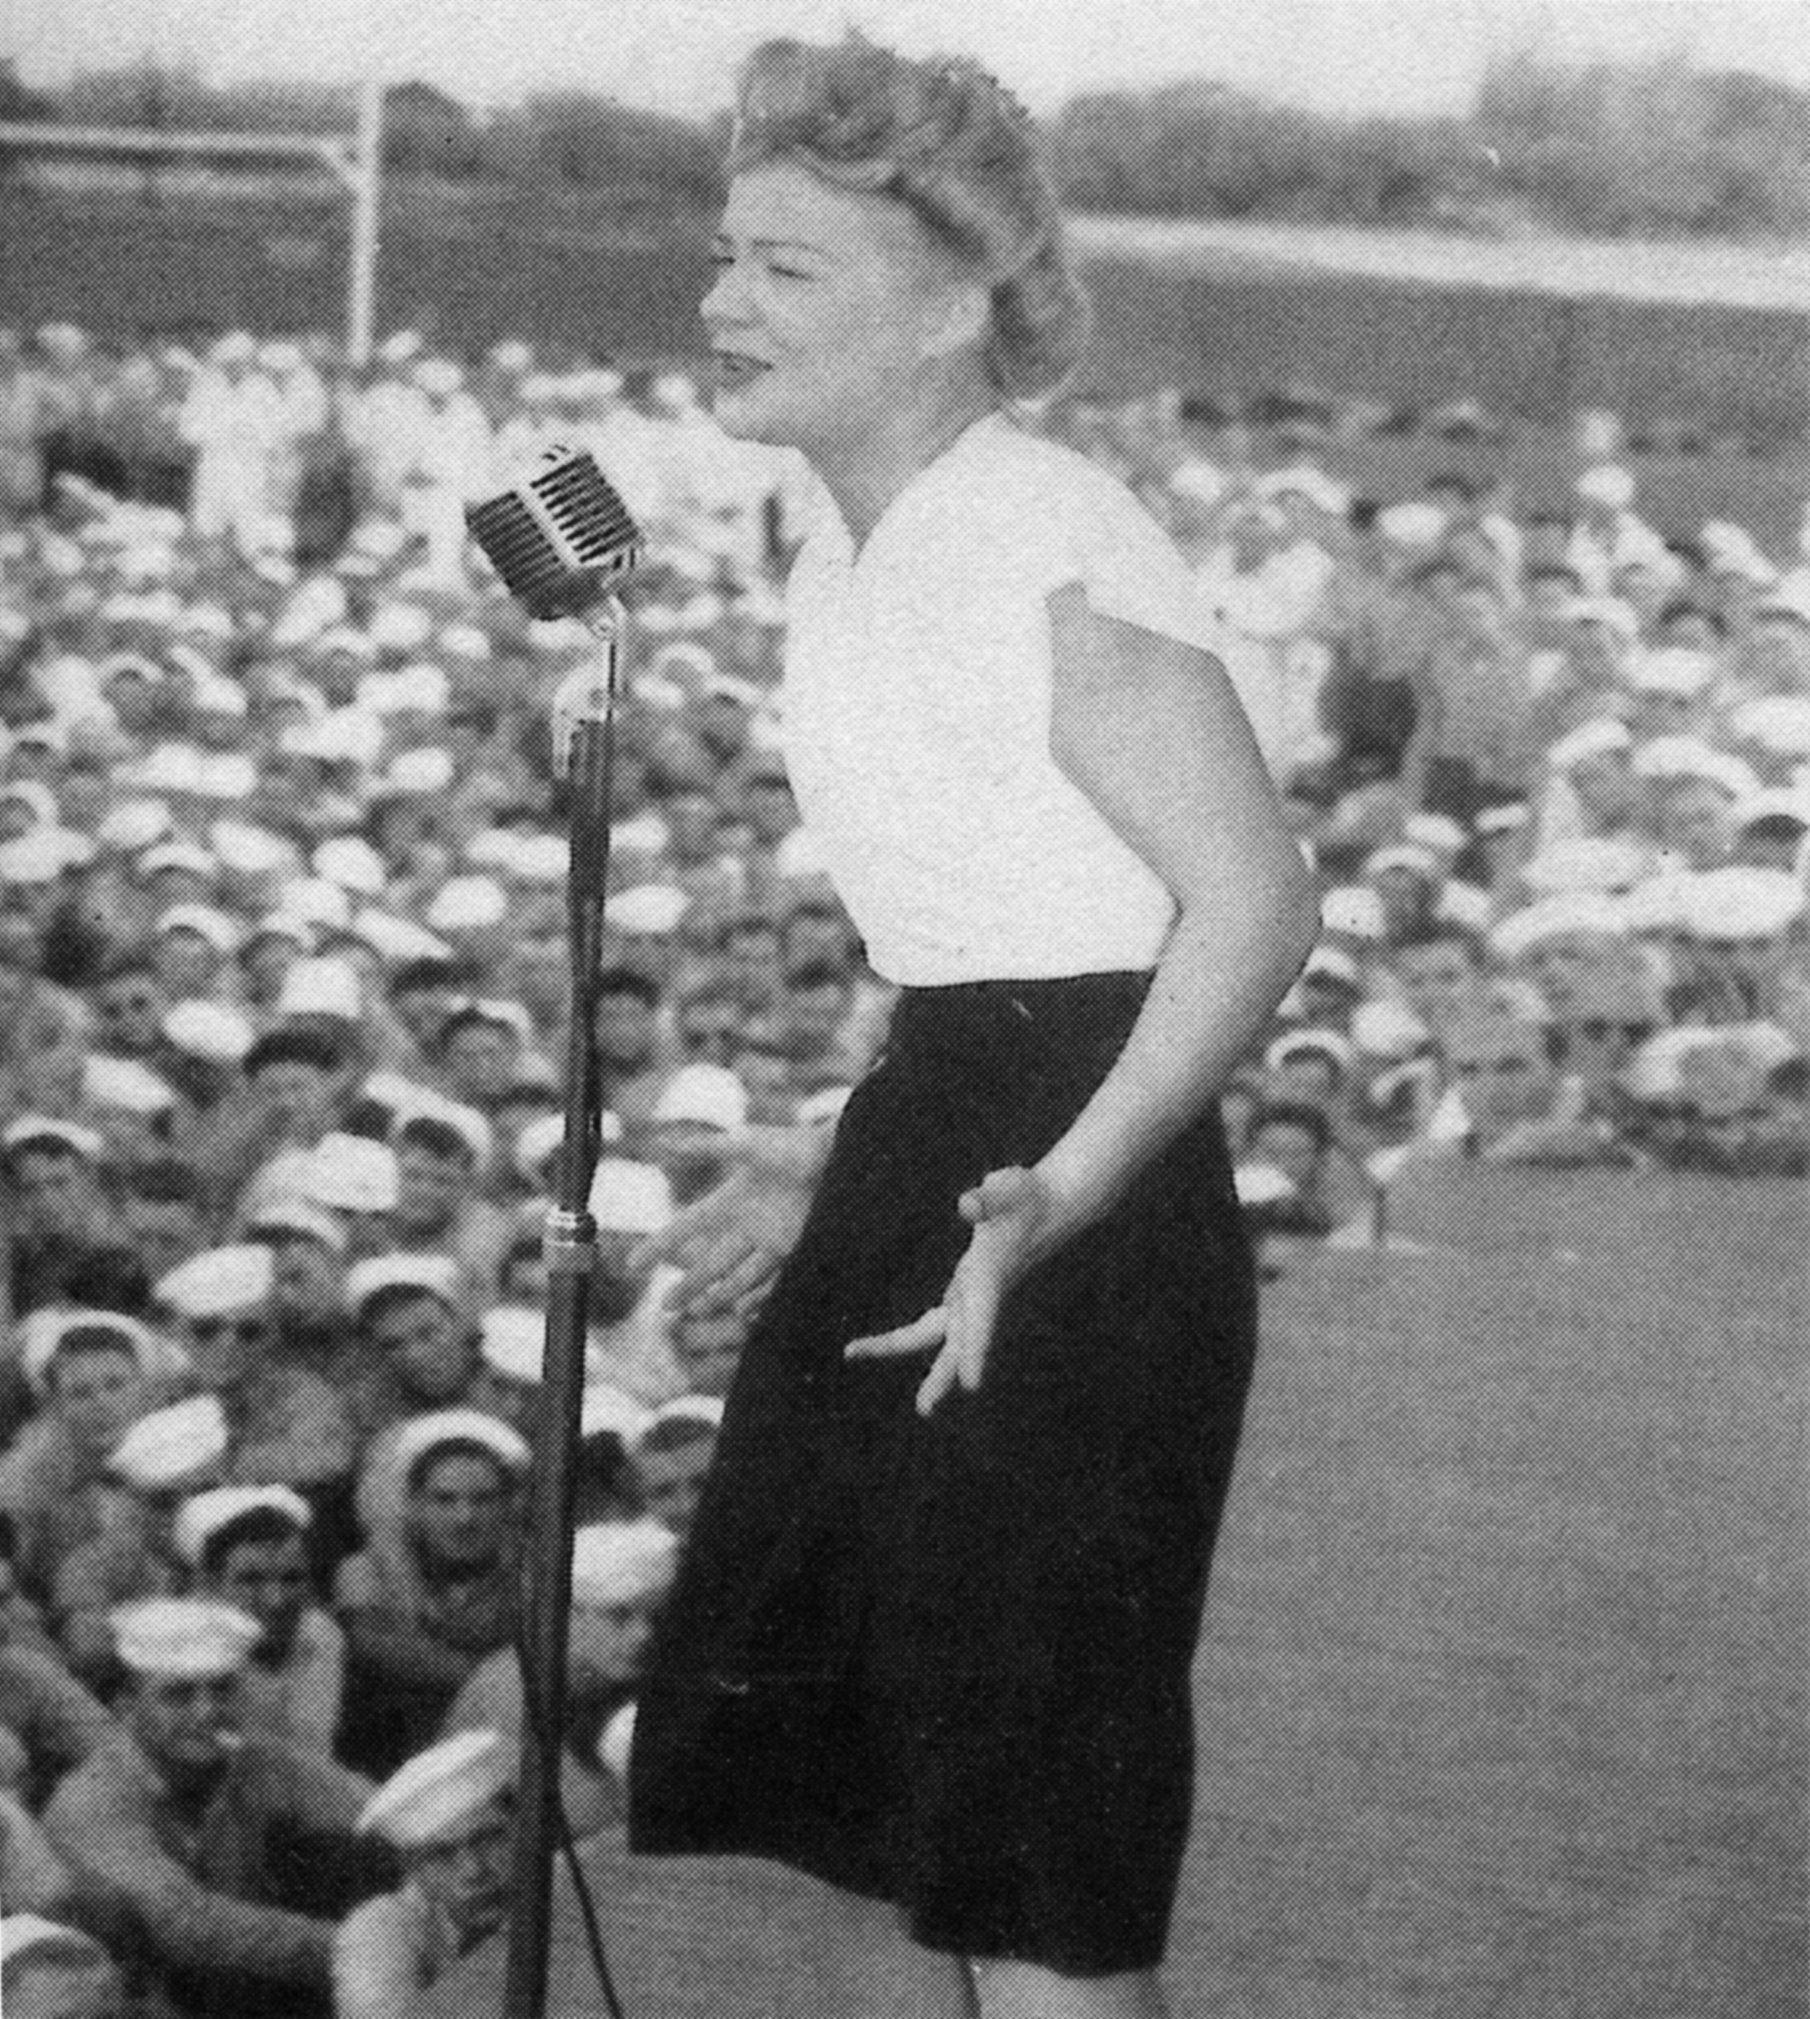 File:Betty Hutton - USN.jpg - Wikimedia Commons